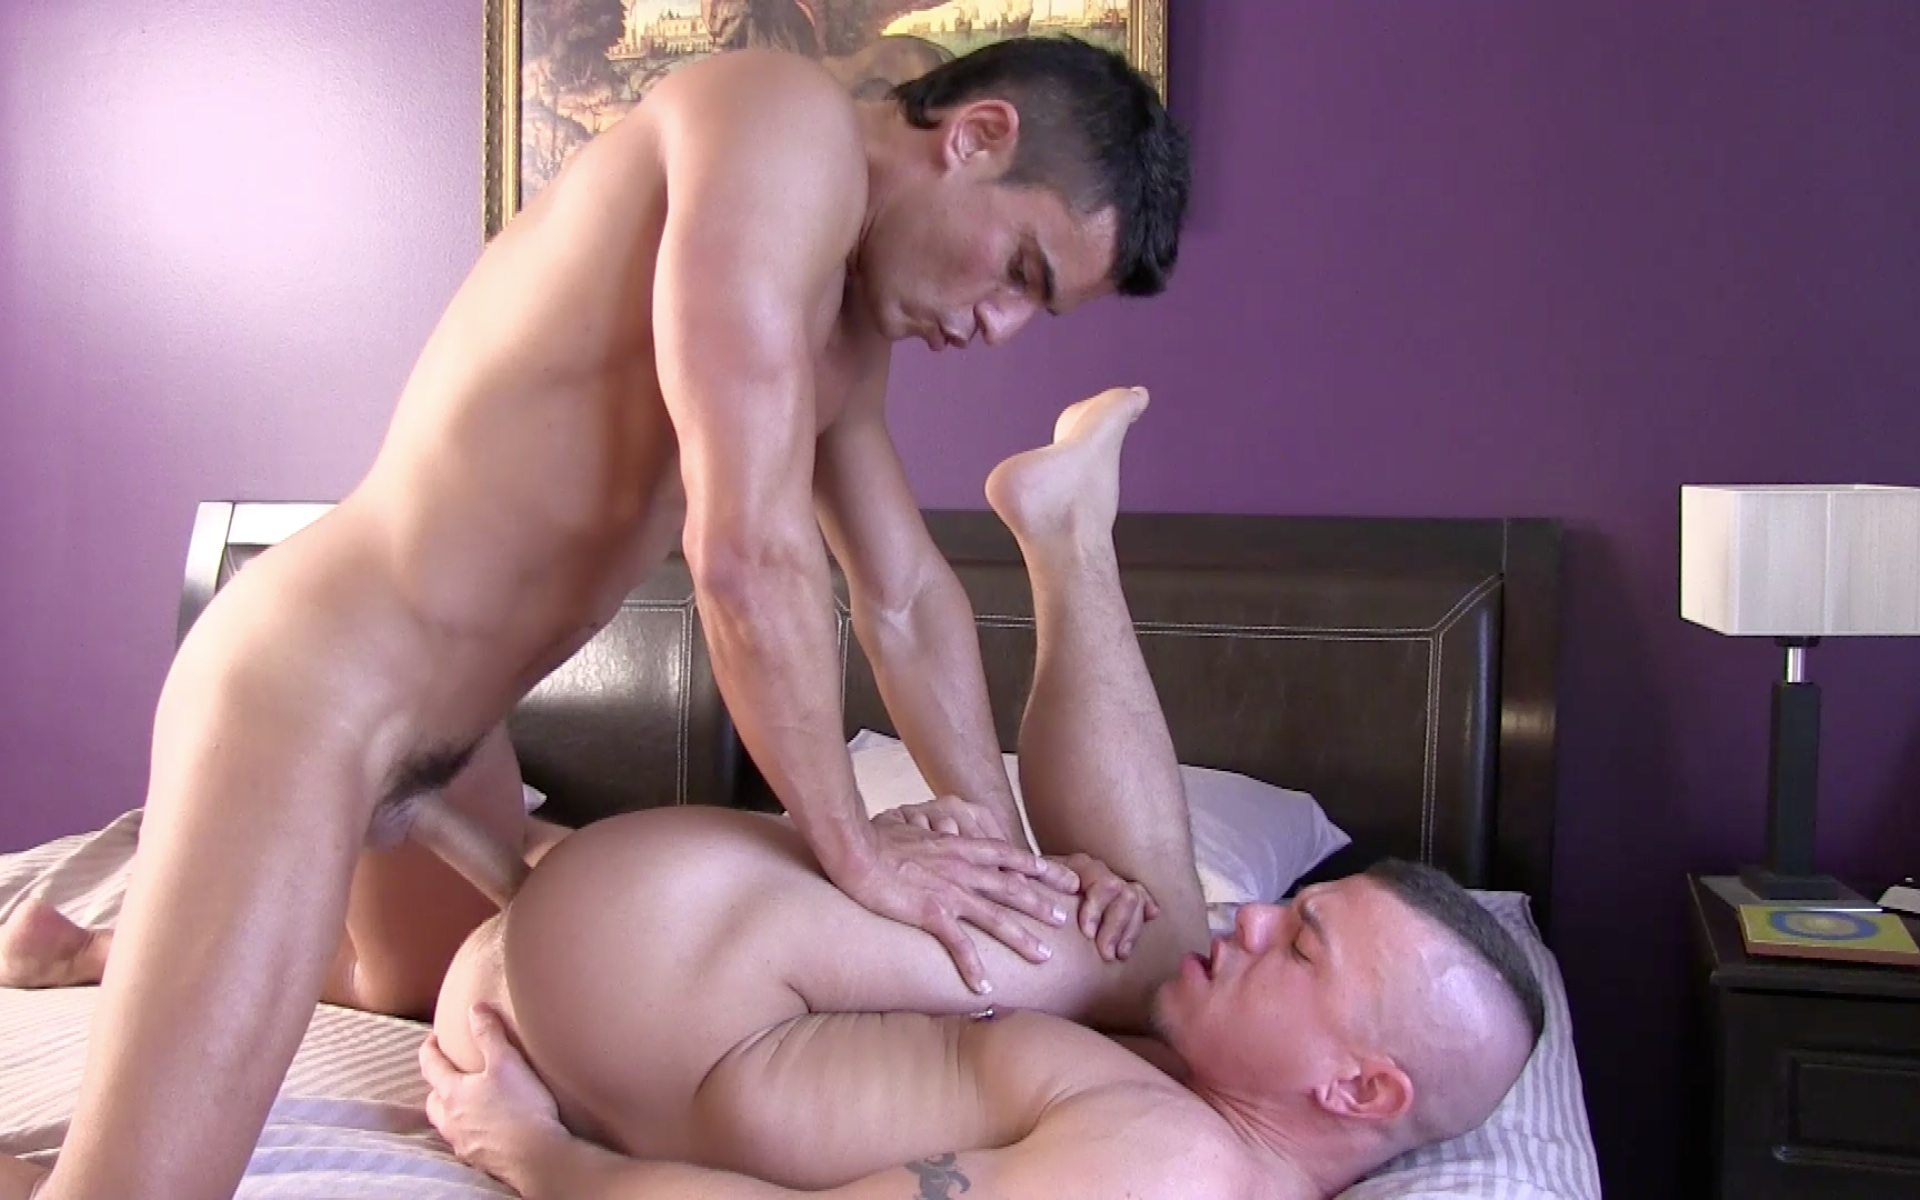 Raw-Fuck-Club-Rafael-Carreras-and-Jesse-Santana-Cuban-bareback-breeding-Amateur-Gay-Porn-3 Rafael Carreras and Jesse Santana: Big Cock Cuban Barebacks His Buddy